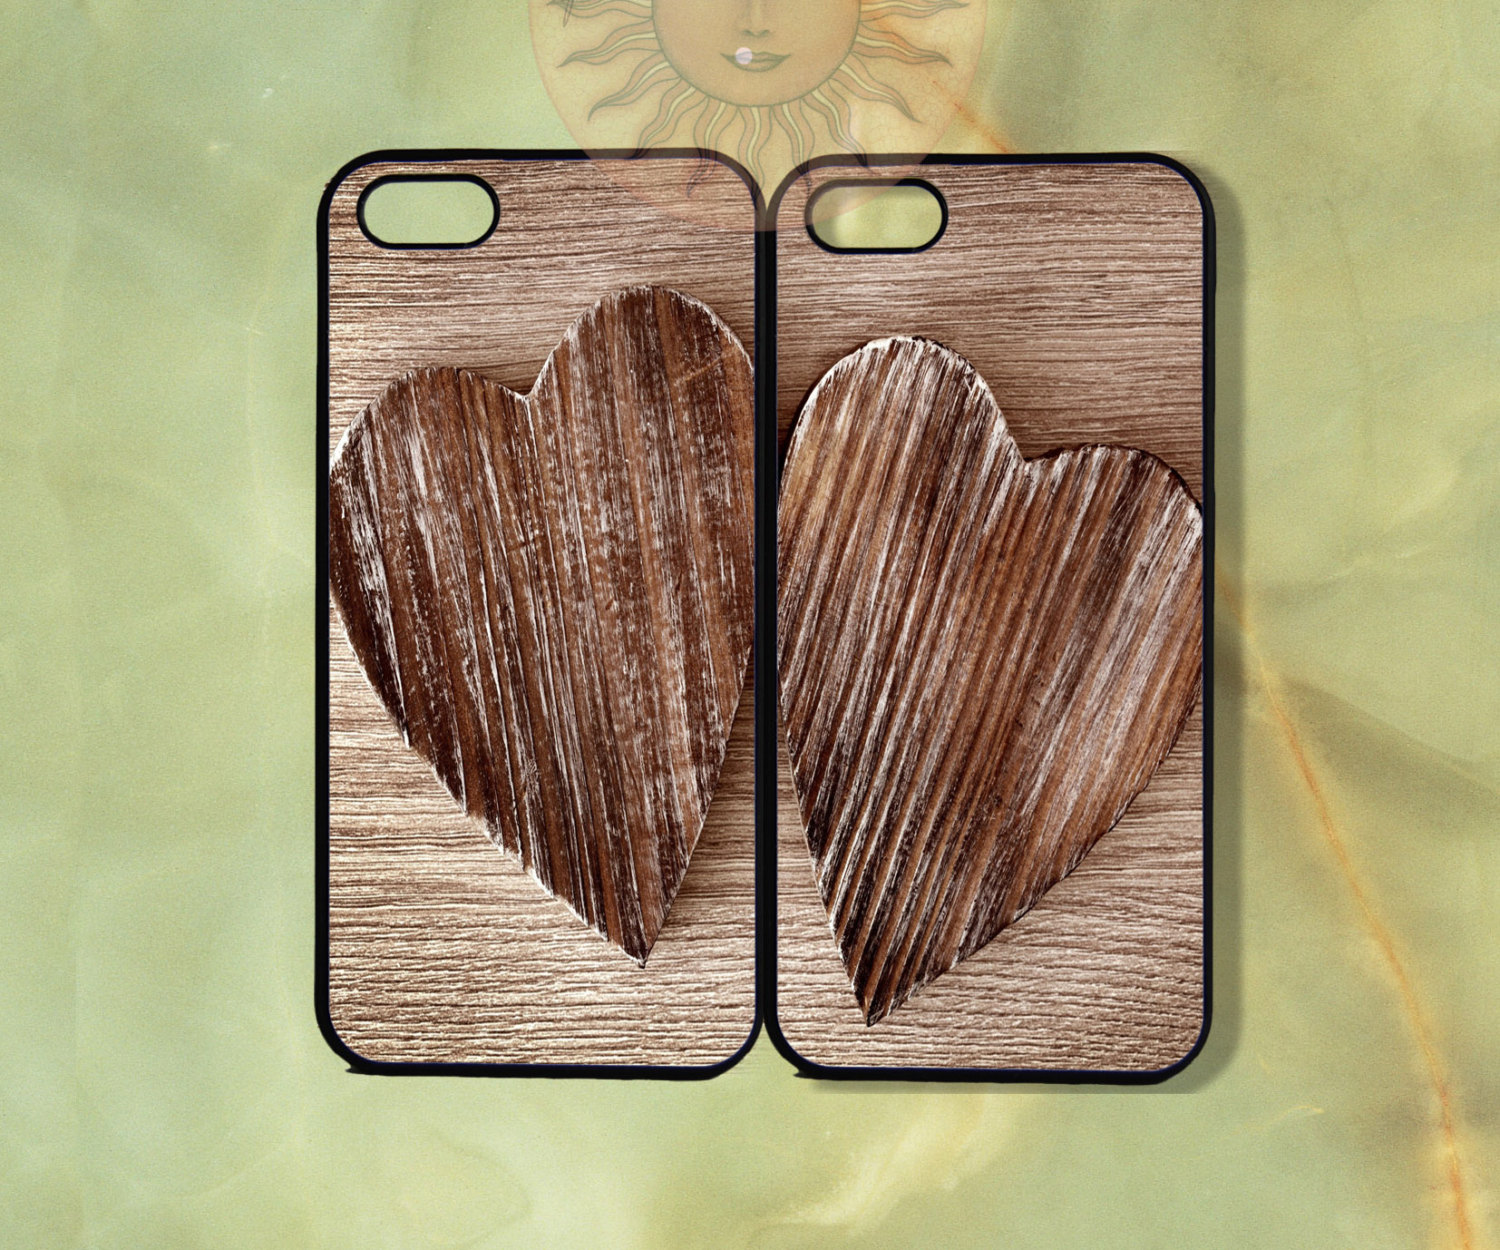 Wooden hearts case ($29) for iPhone and Samsung Galaxy models